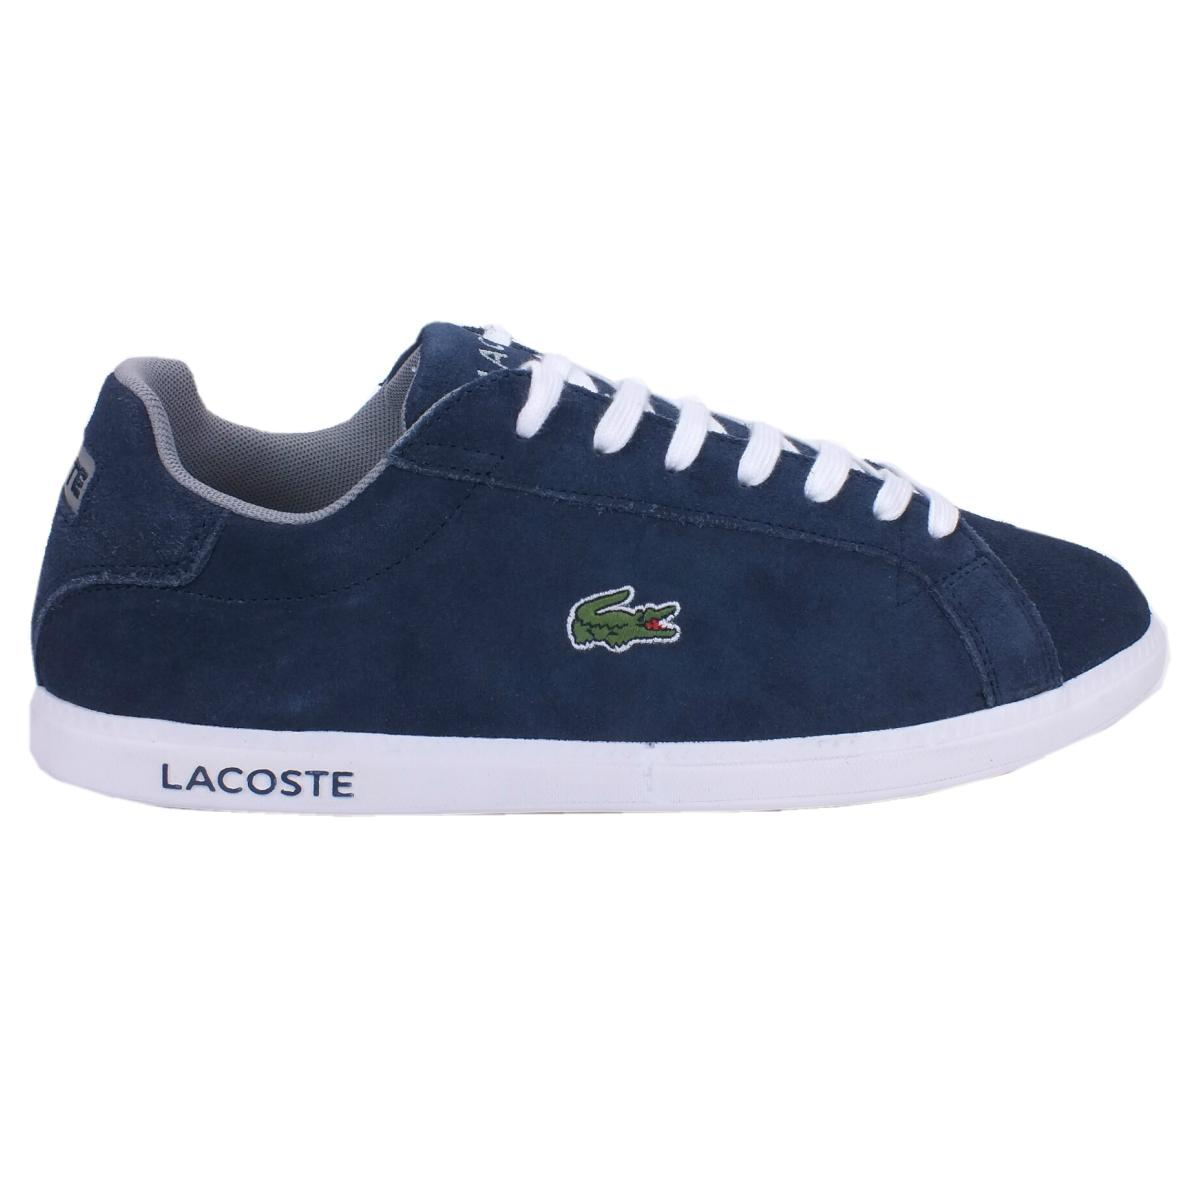 lacoste schuhe herren blau oberhof. Black Bedroom Furniture Sets. Home Design Ideas